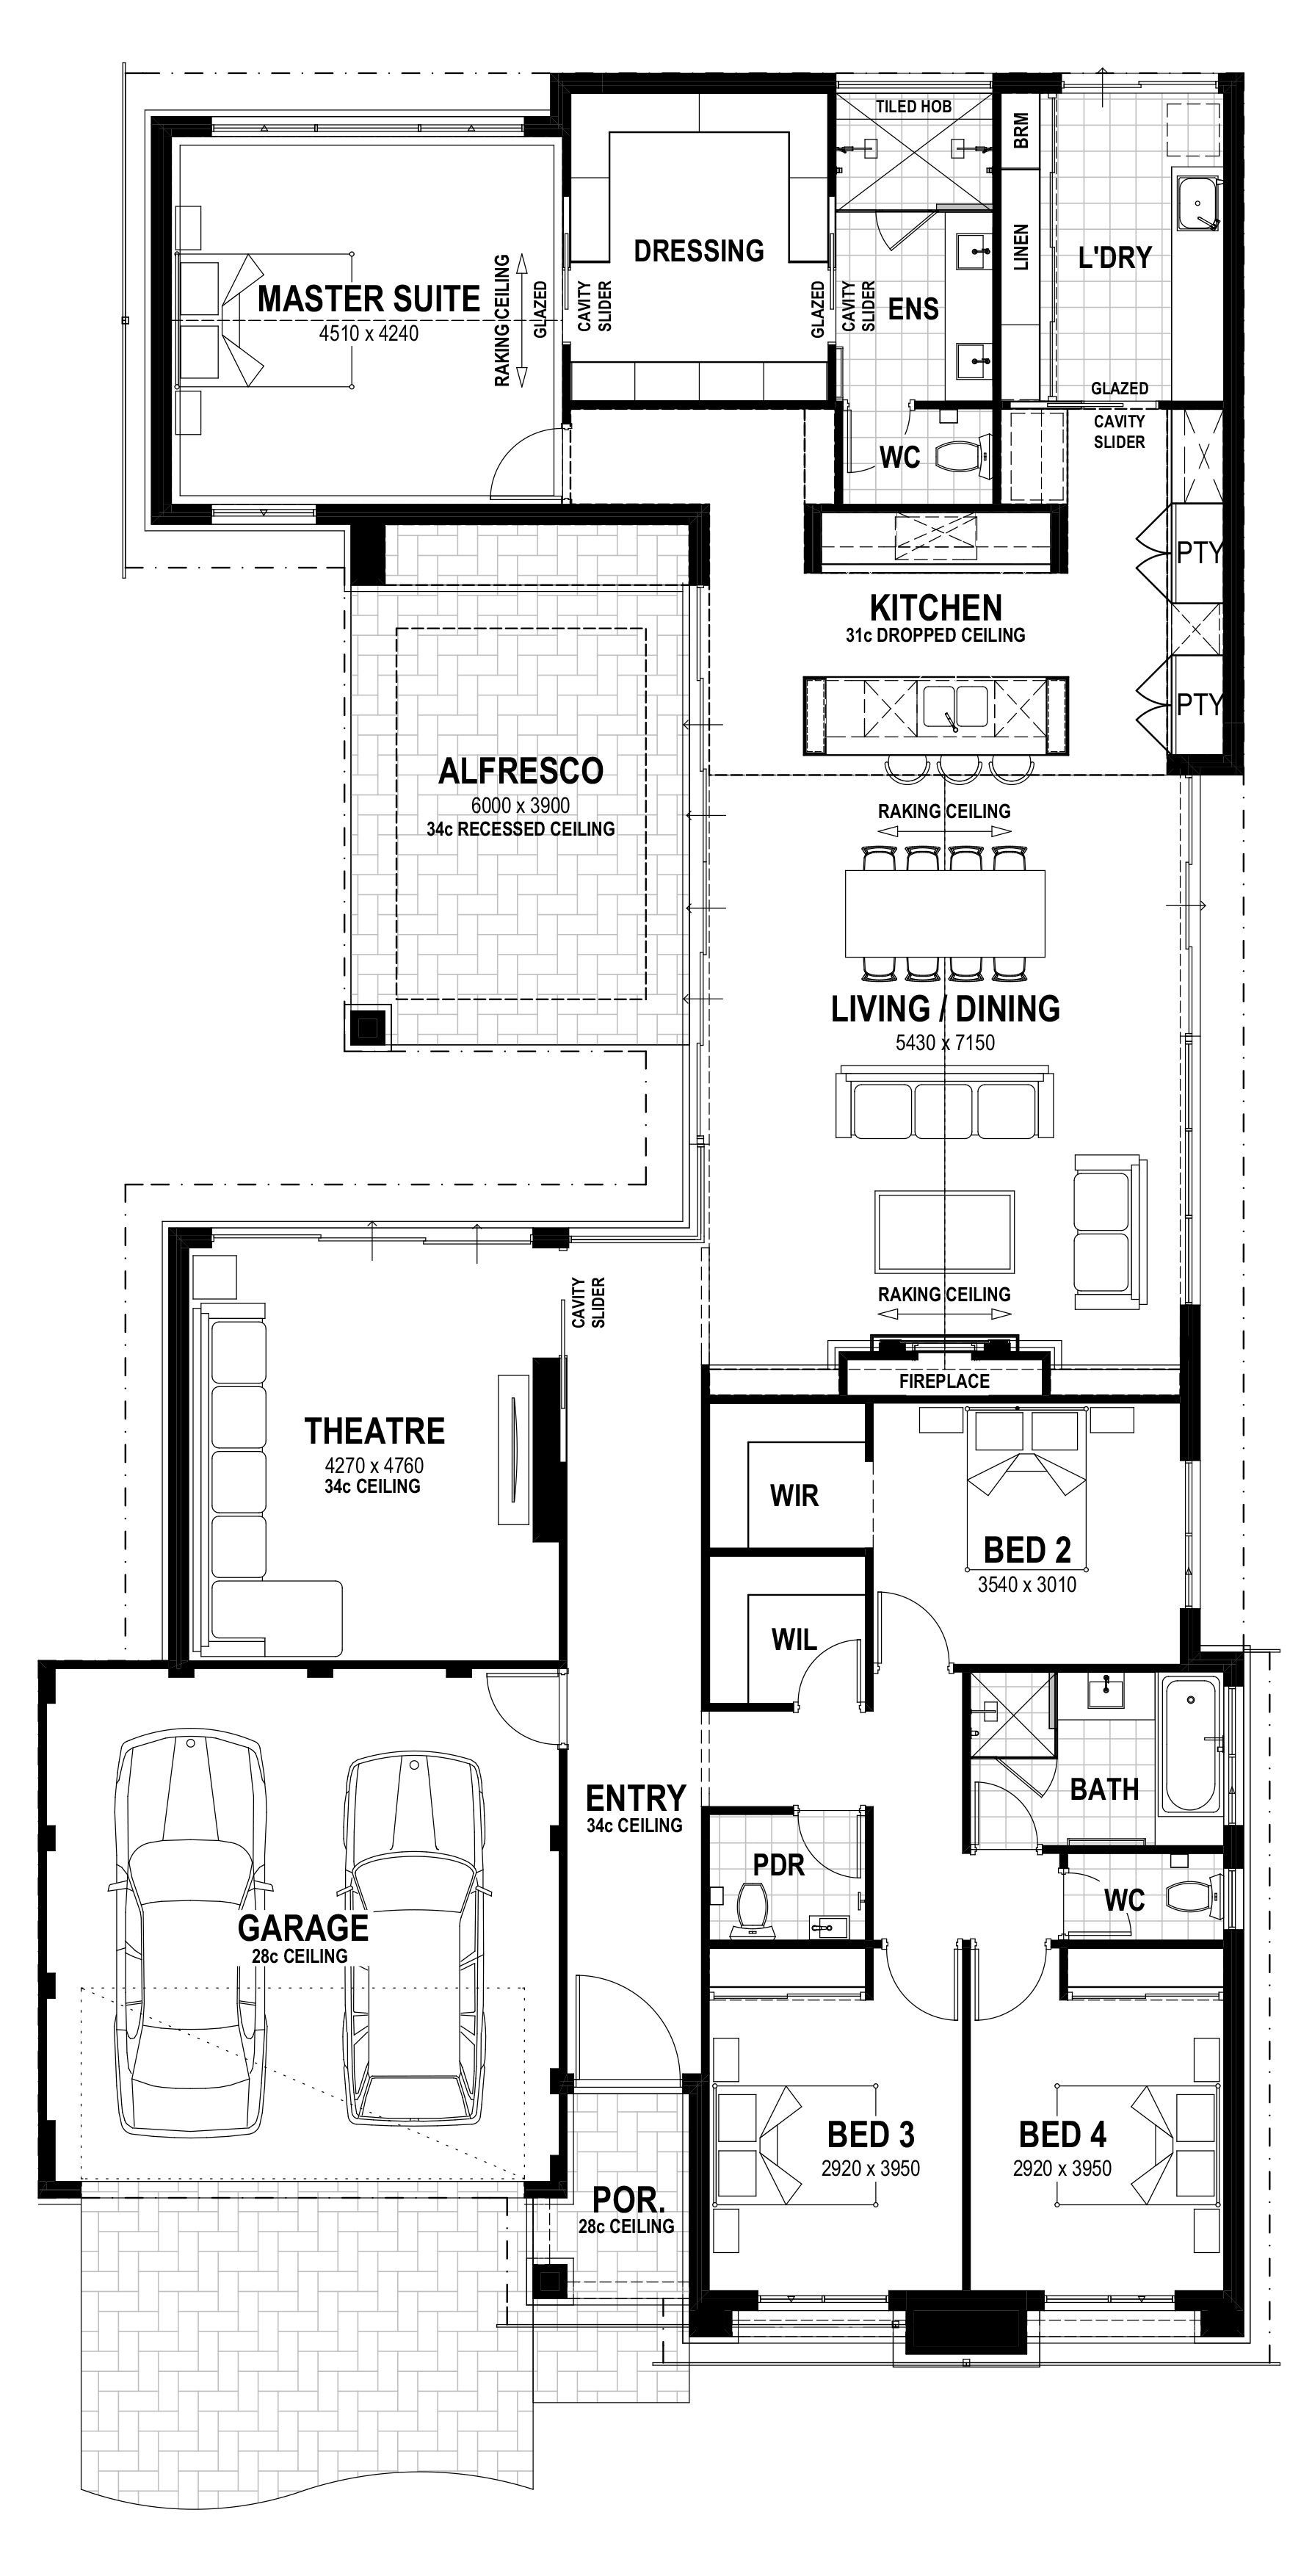 Design My Own House Plan 2021 Floor Plan Design Home Design Floor Plans New House Plans